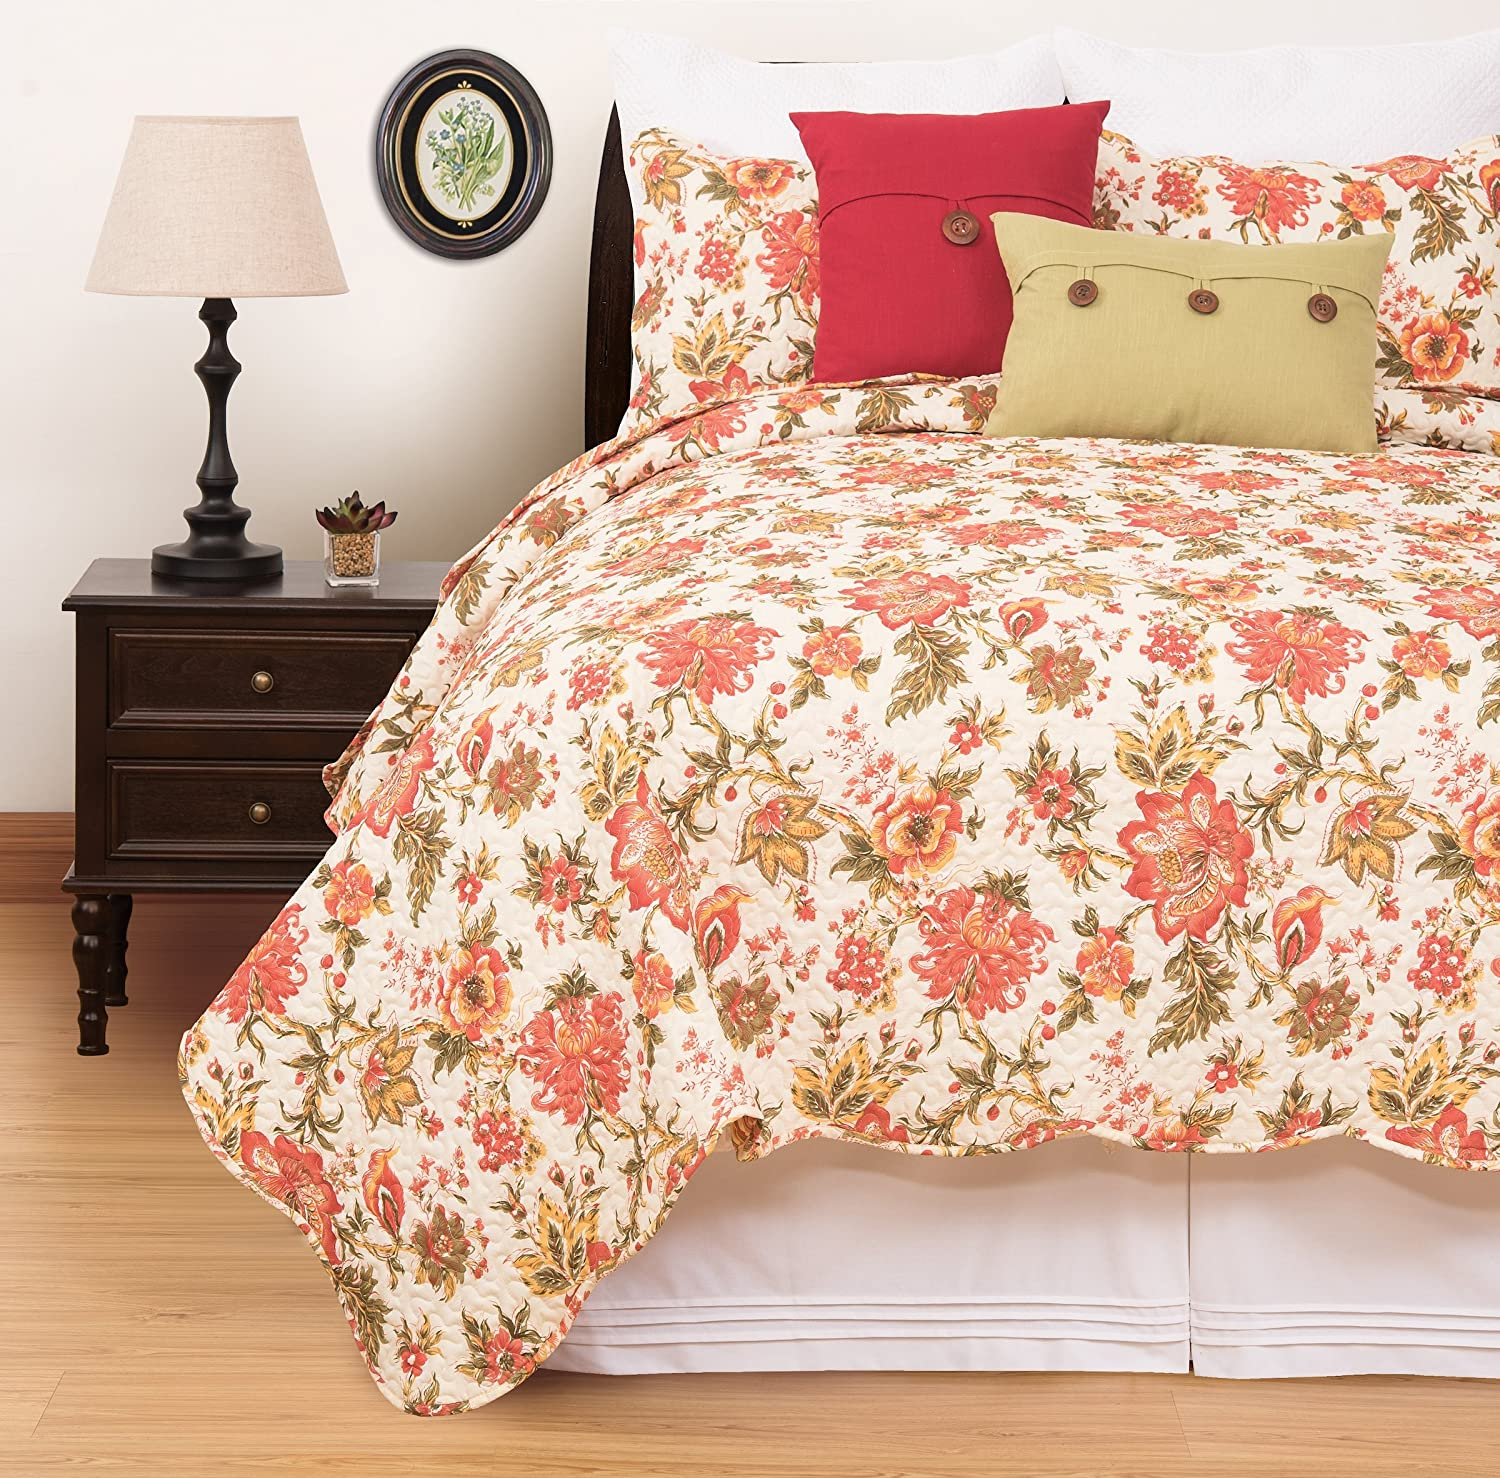 C&F Home Alyssa Beautiful Floral 3 Piece Quilt Set All-Season Reversible Bedspread Oversized Bedding Coverlet, King Size, Red